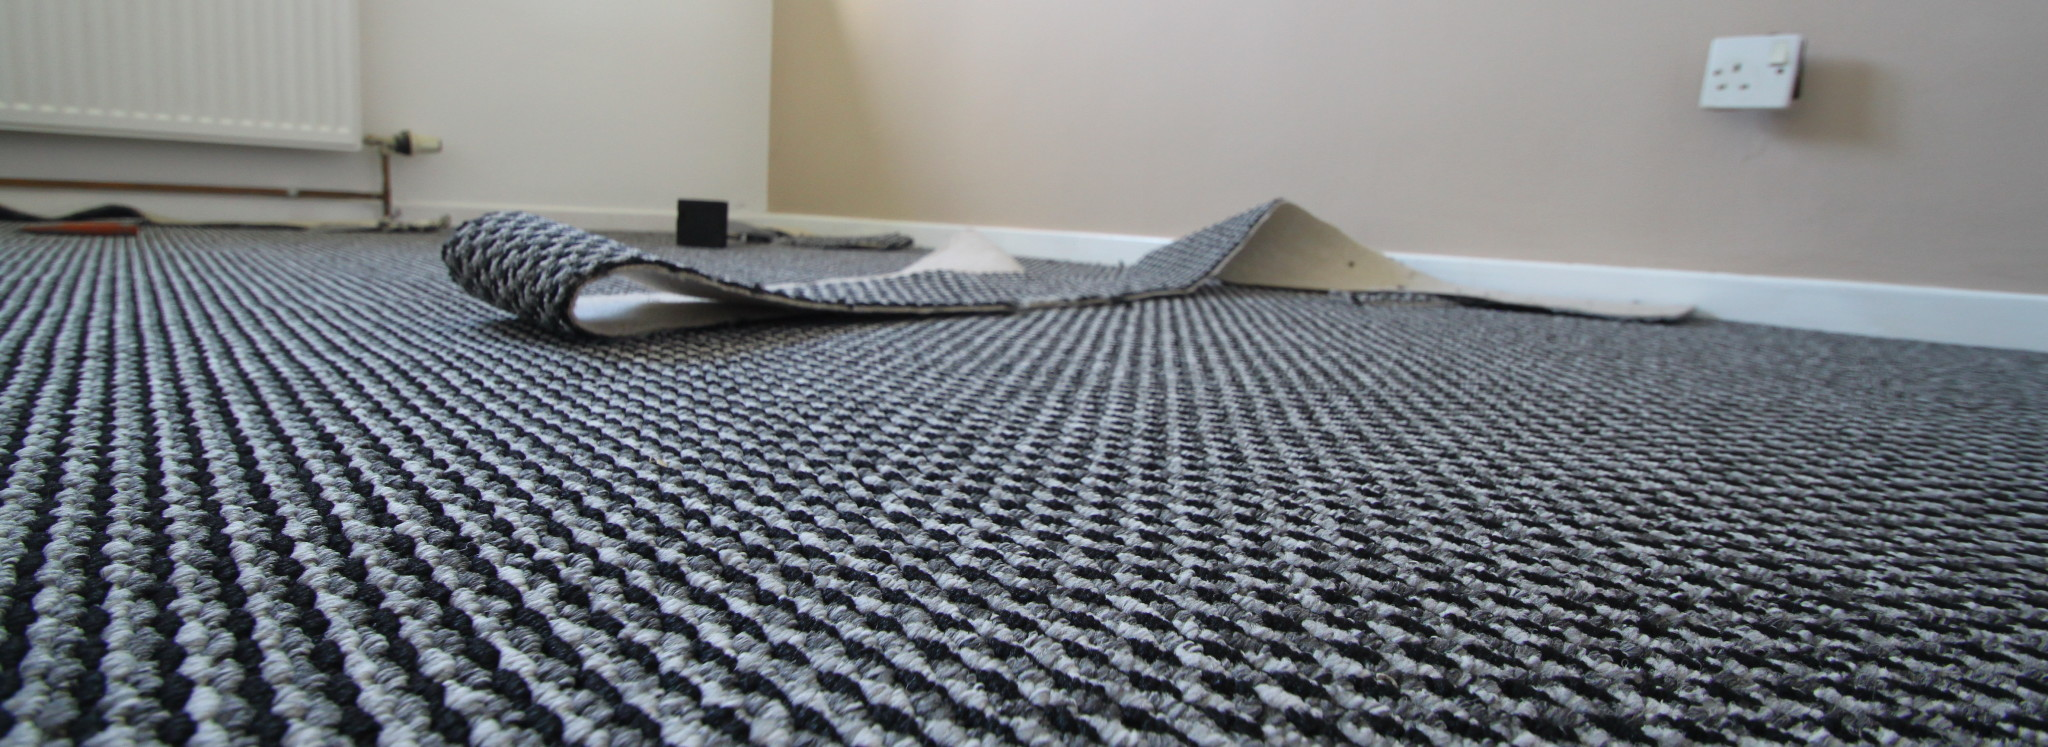 carpets and flooring to enjoy